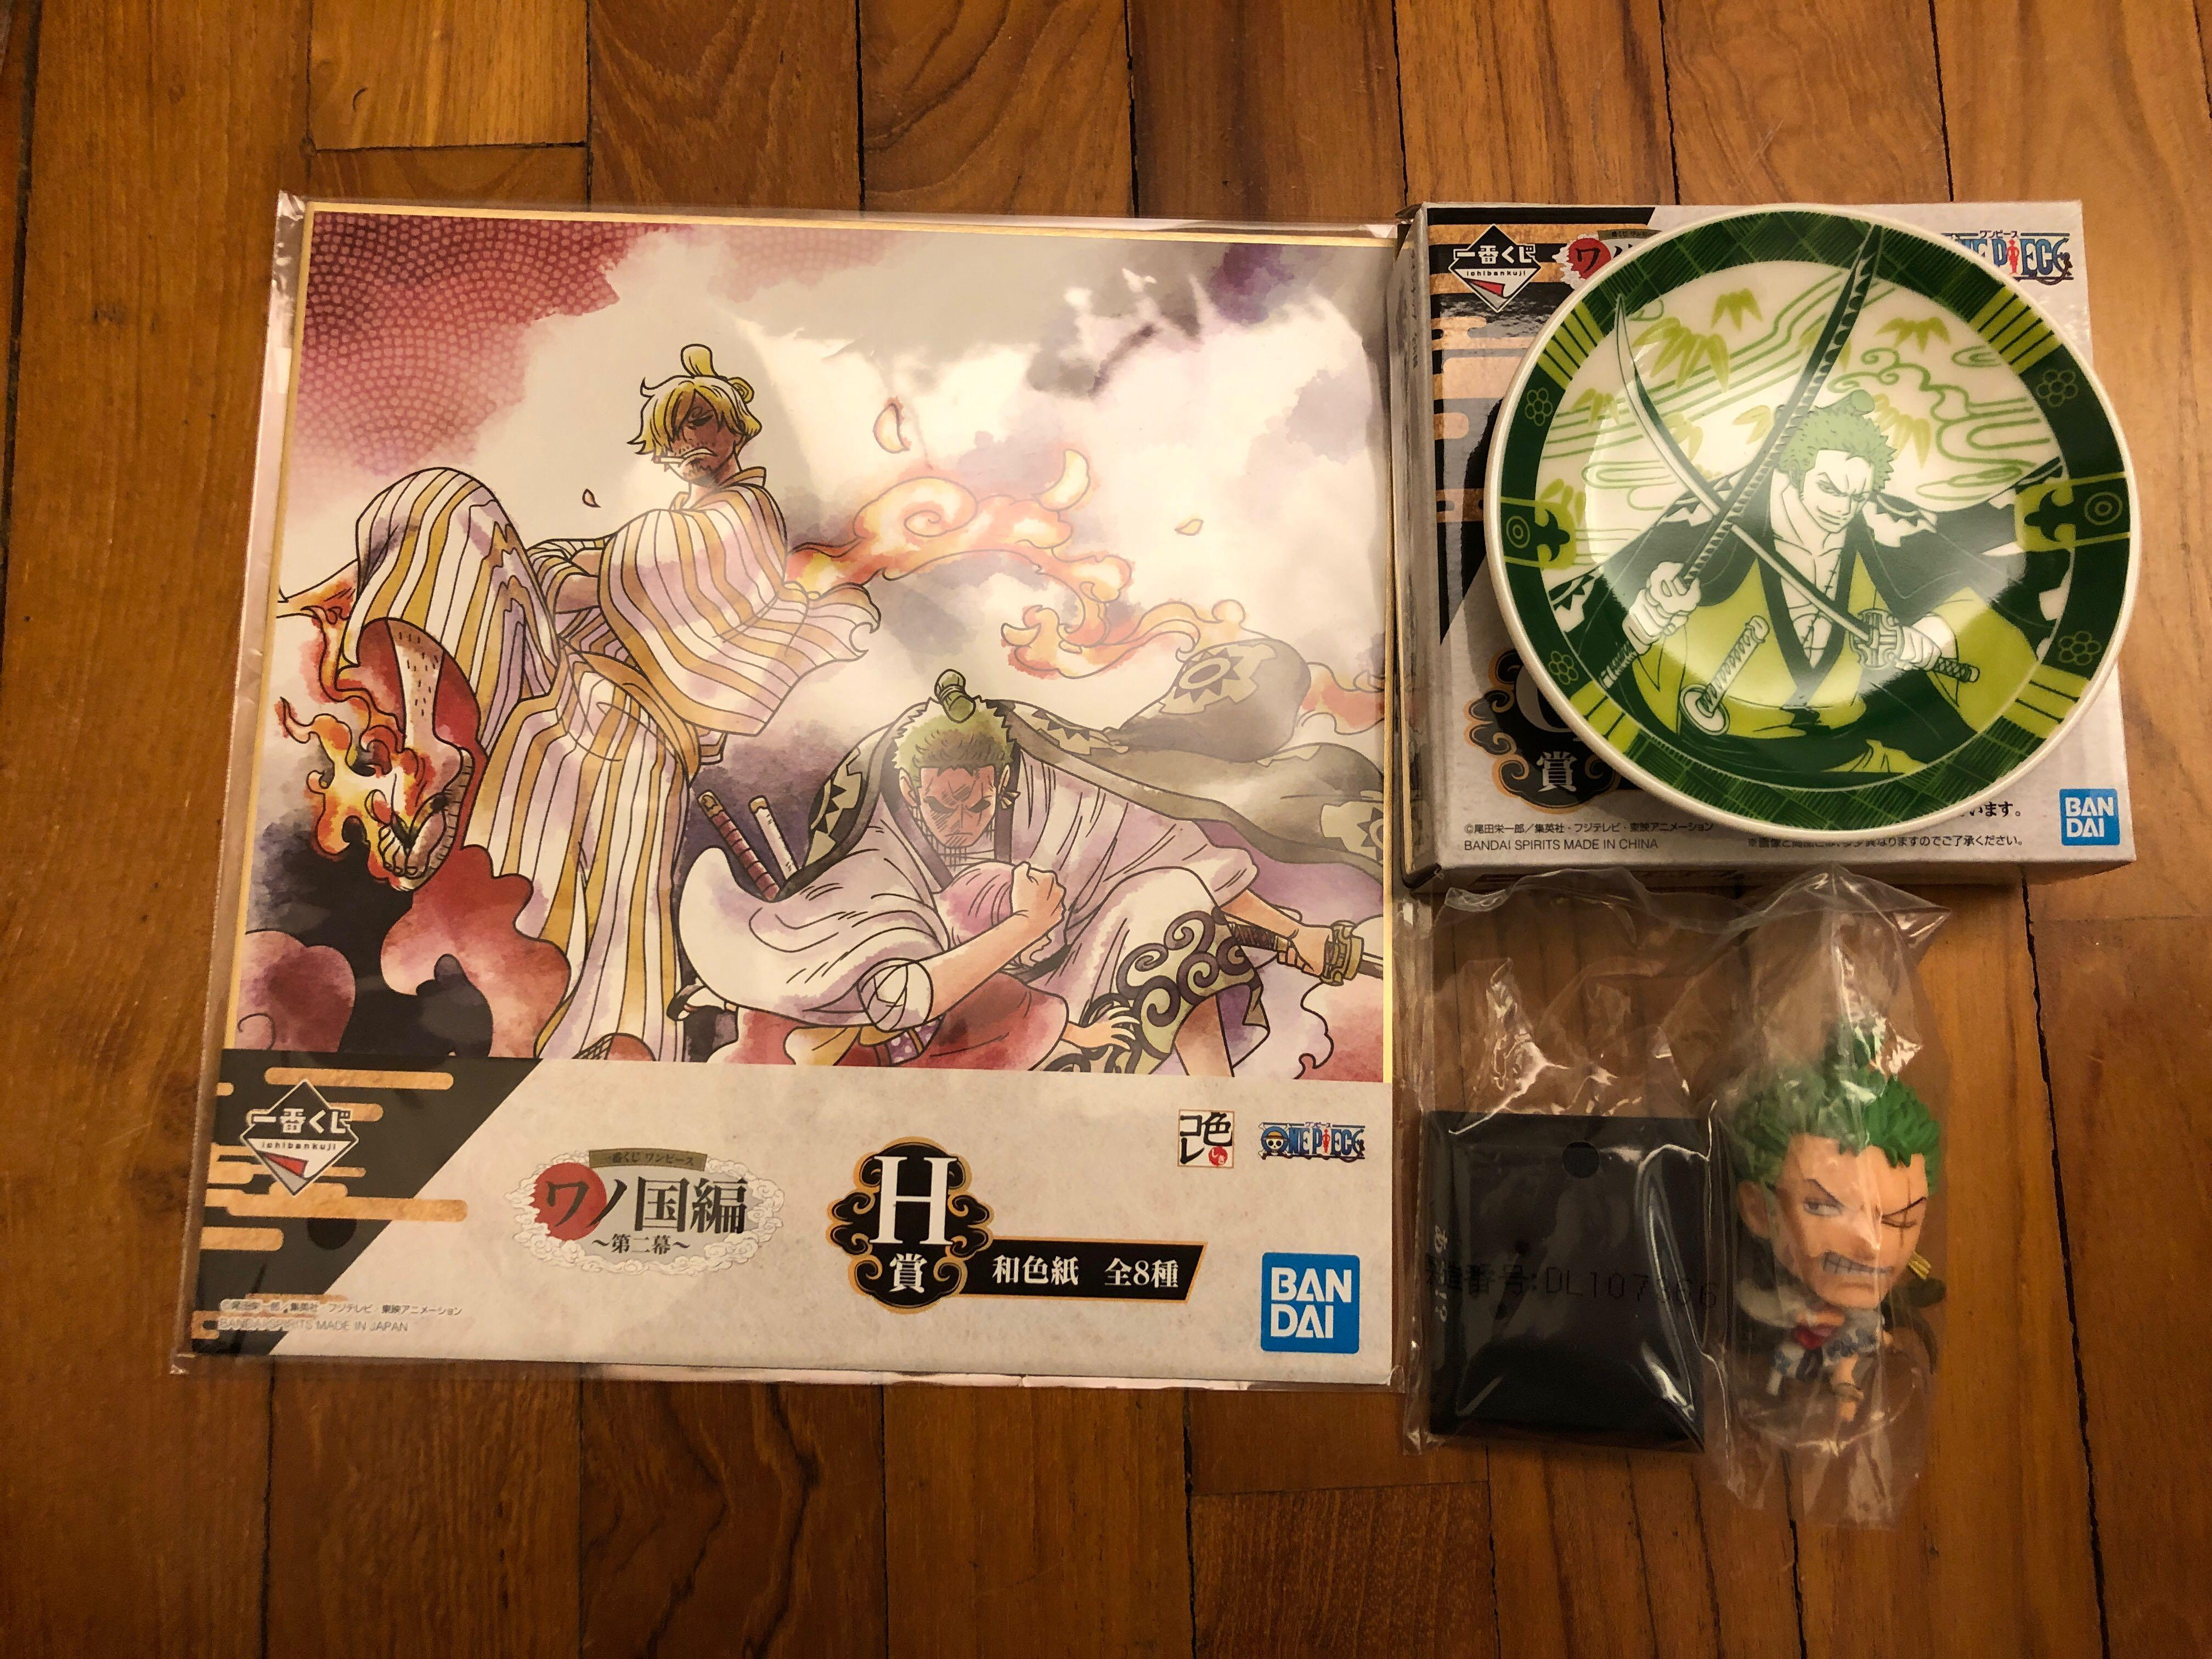 Wts - set one piece Wano country second act ichiban kuji